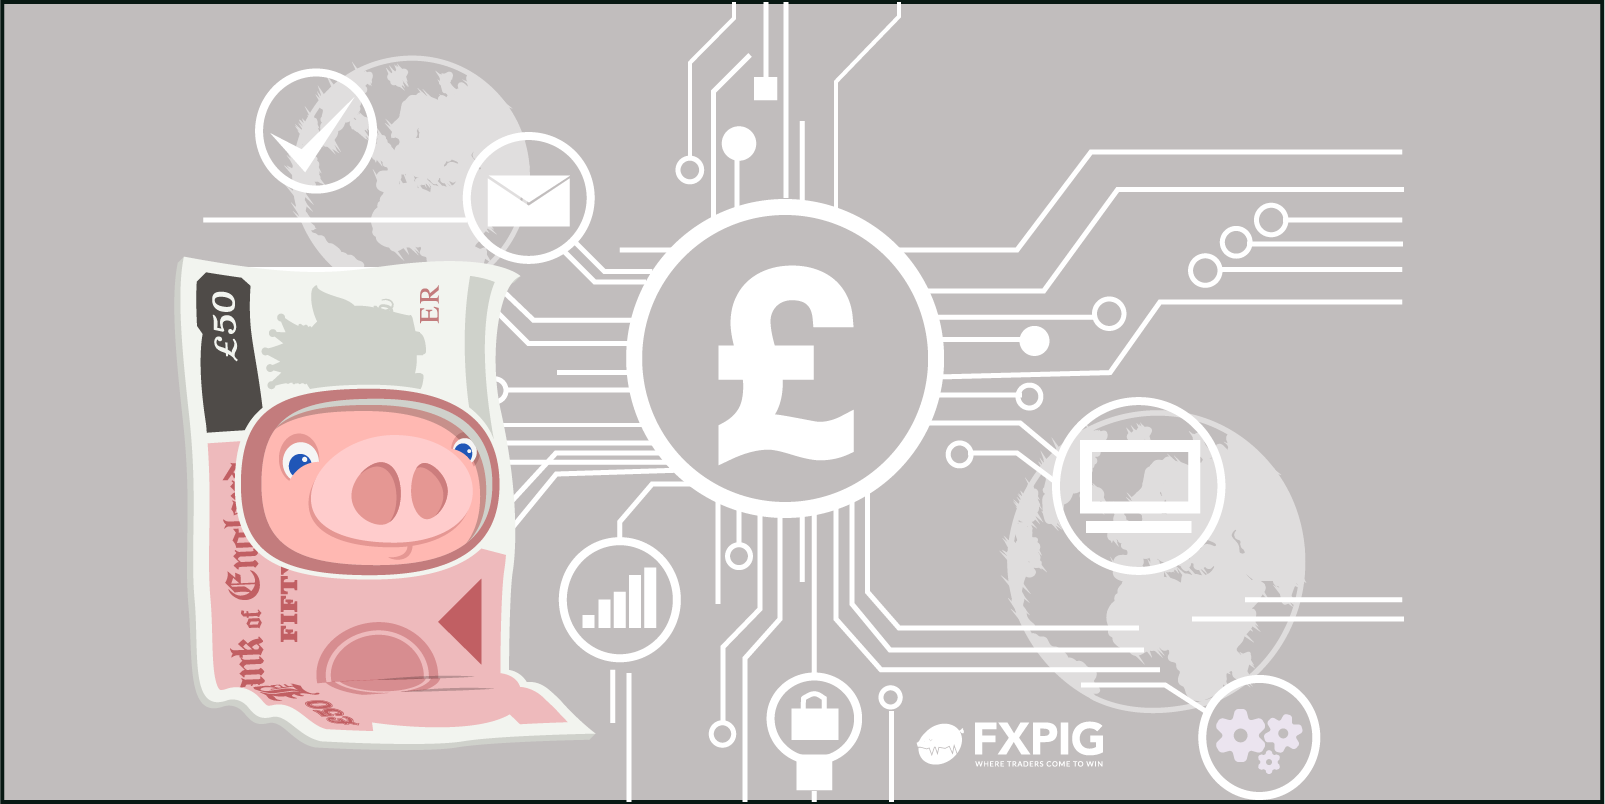 GBP_bank-account_forex_FXPIG